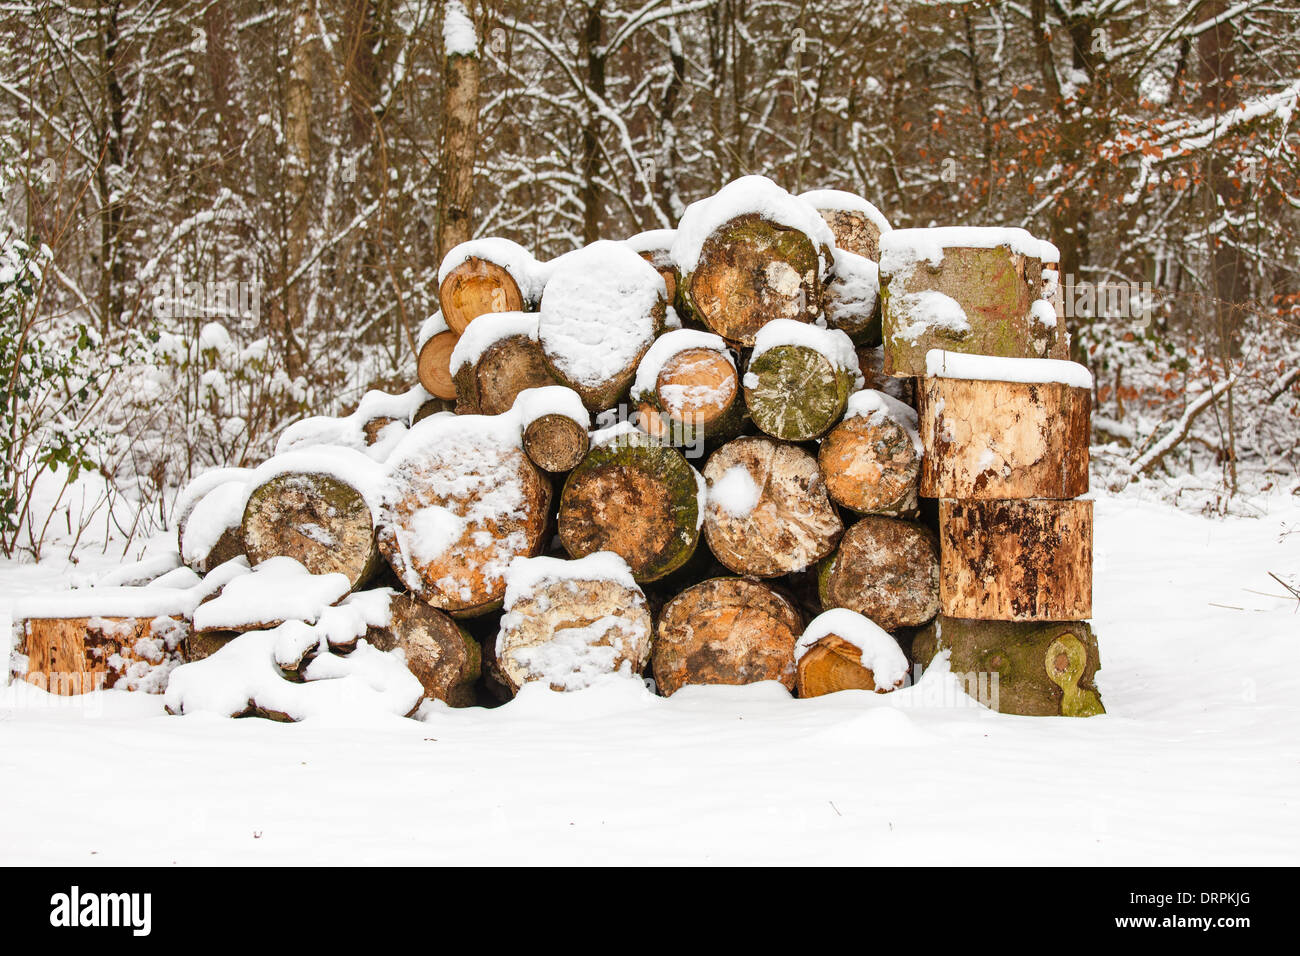 Firewood at the edge of the forest, snow Stock Photo